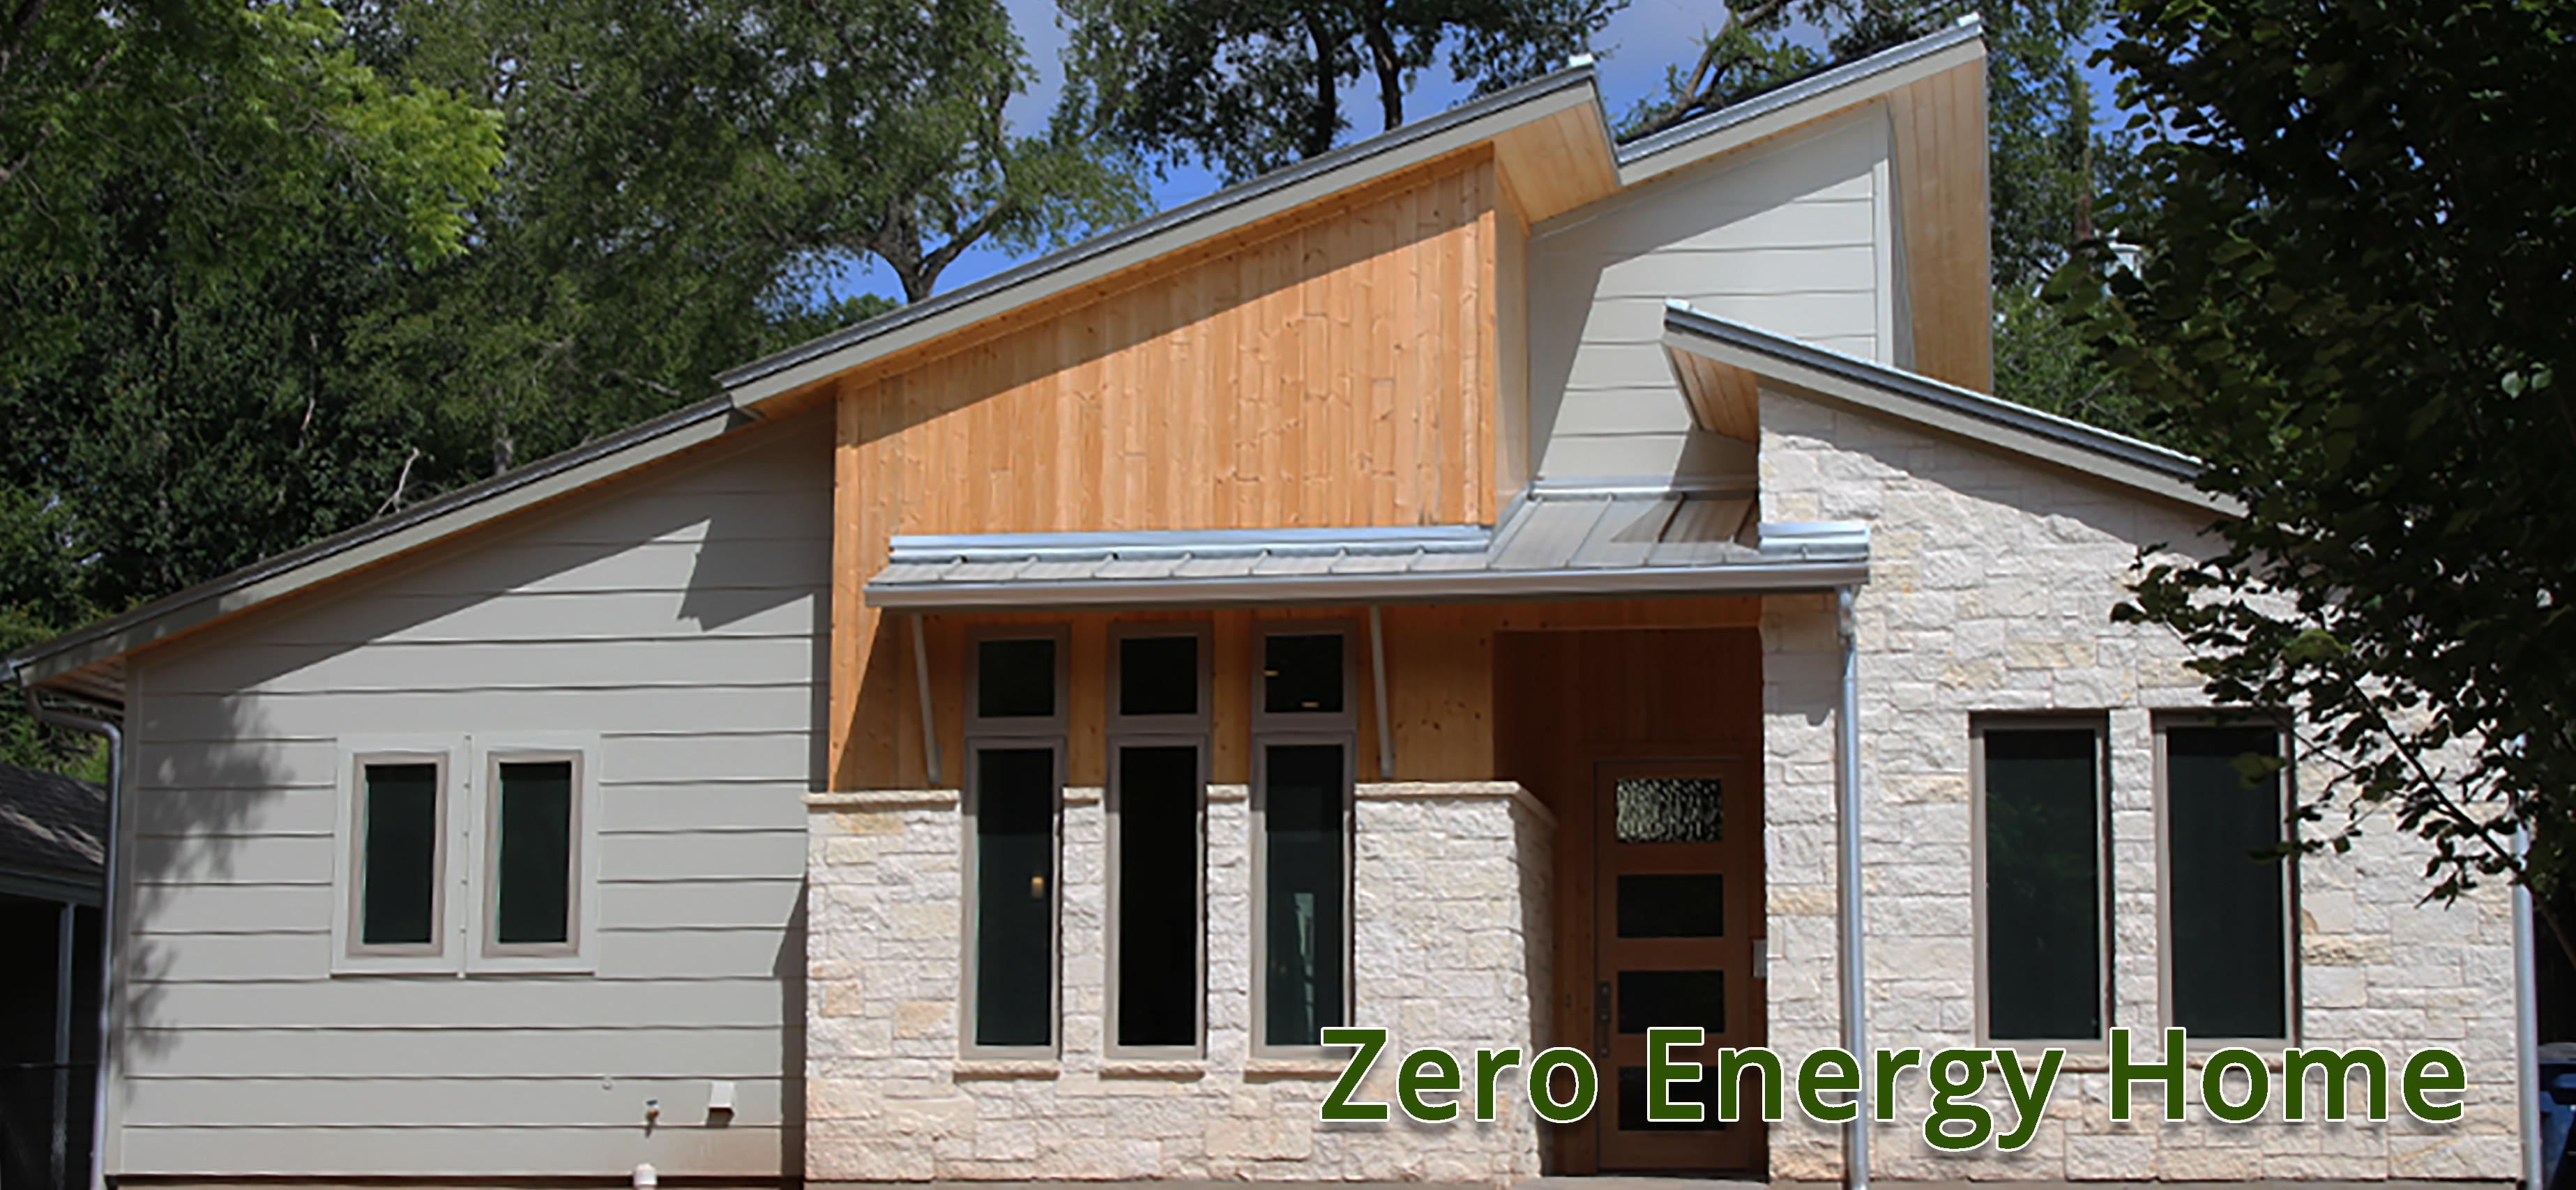 Zero Energy Home Sustainable Building